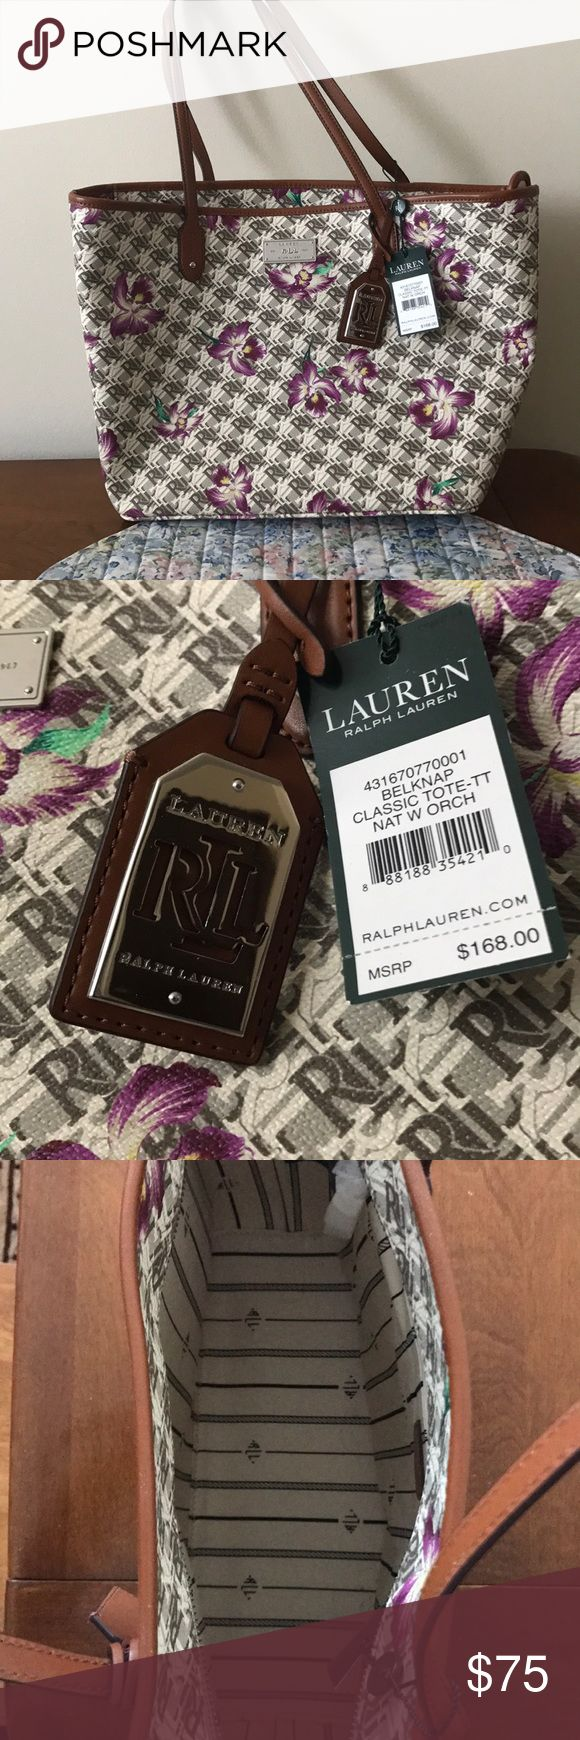 """Lauren Ralph Lauren Tote Bag This is the Belknap Classic Tote bag from Lauren Ralph Lauren. The color is labeled as """"Nature with Orchards"""" and the retail price is $168.  Perfect condition - new with tags. Zipper closure with inside pocket. Lauren Ralph Lauren Bags Totes"""